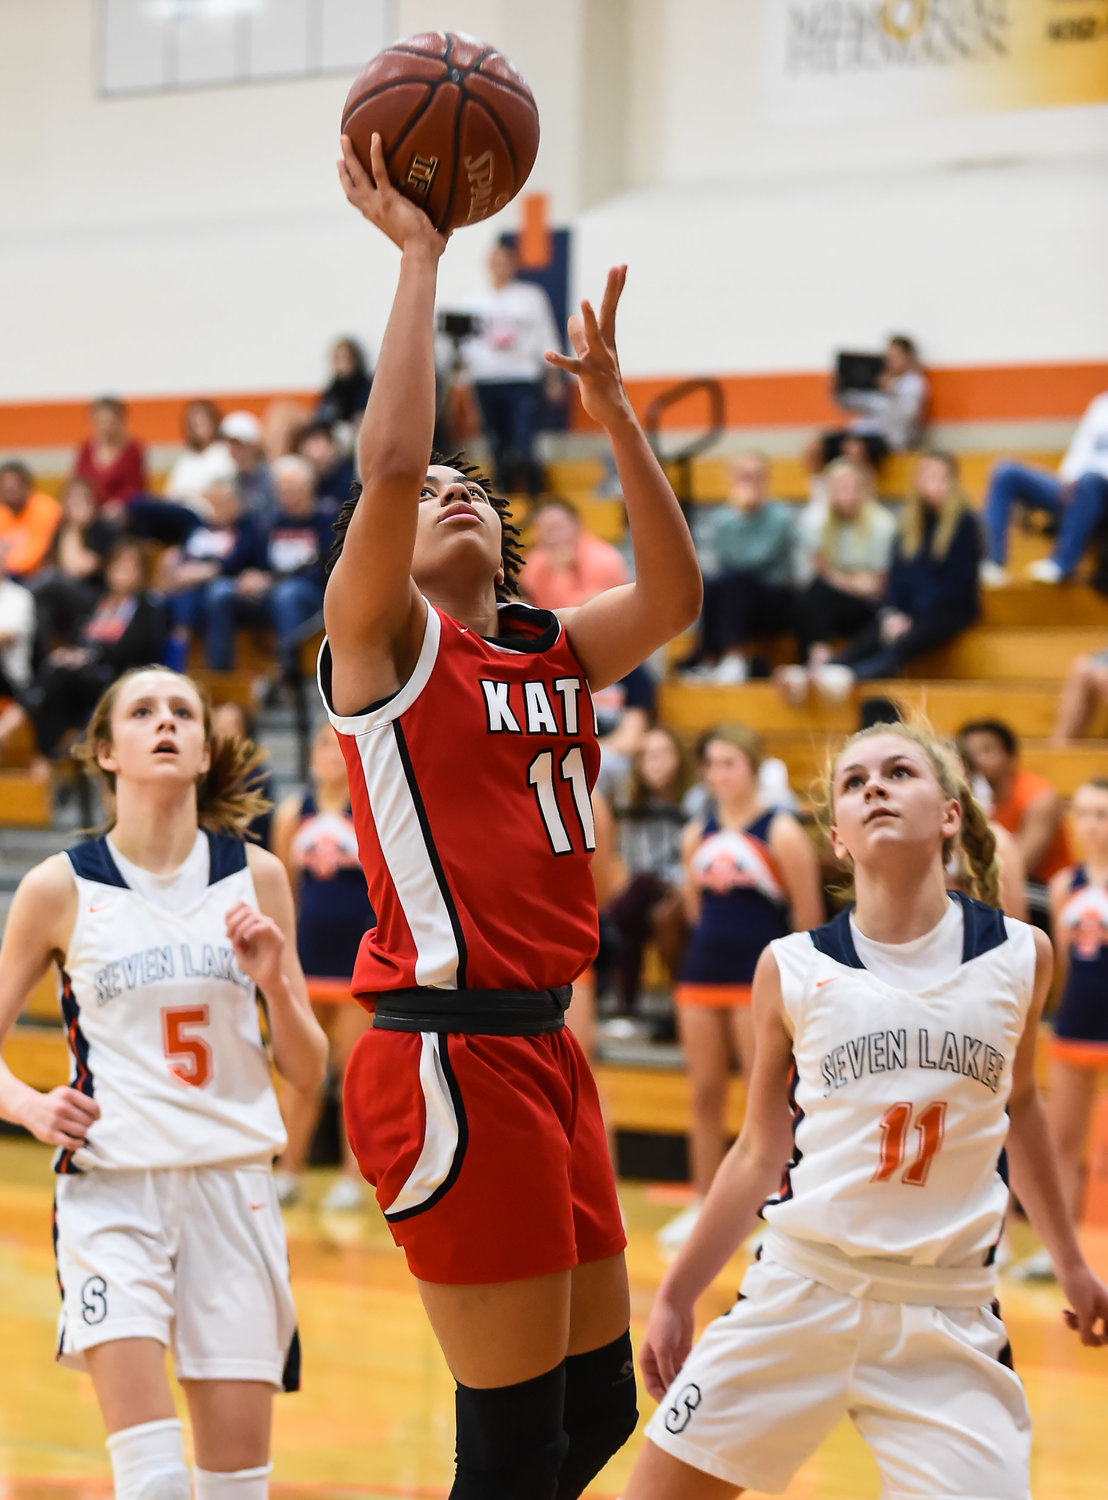 Katy Tx. Jan. 7, 2020: Katy's Allana Thompson (11) gets under the basket as she goes up for the shot during district basketball game between Katy Tigers and Seven Lakes Spartans at Seven Lakes HS.  (Photo by Mark Goodman / Katy Times)